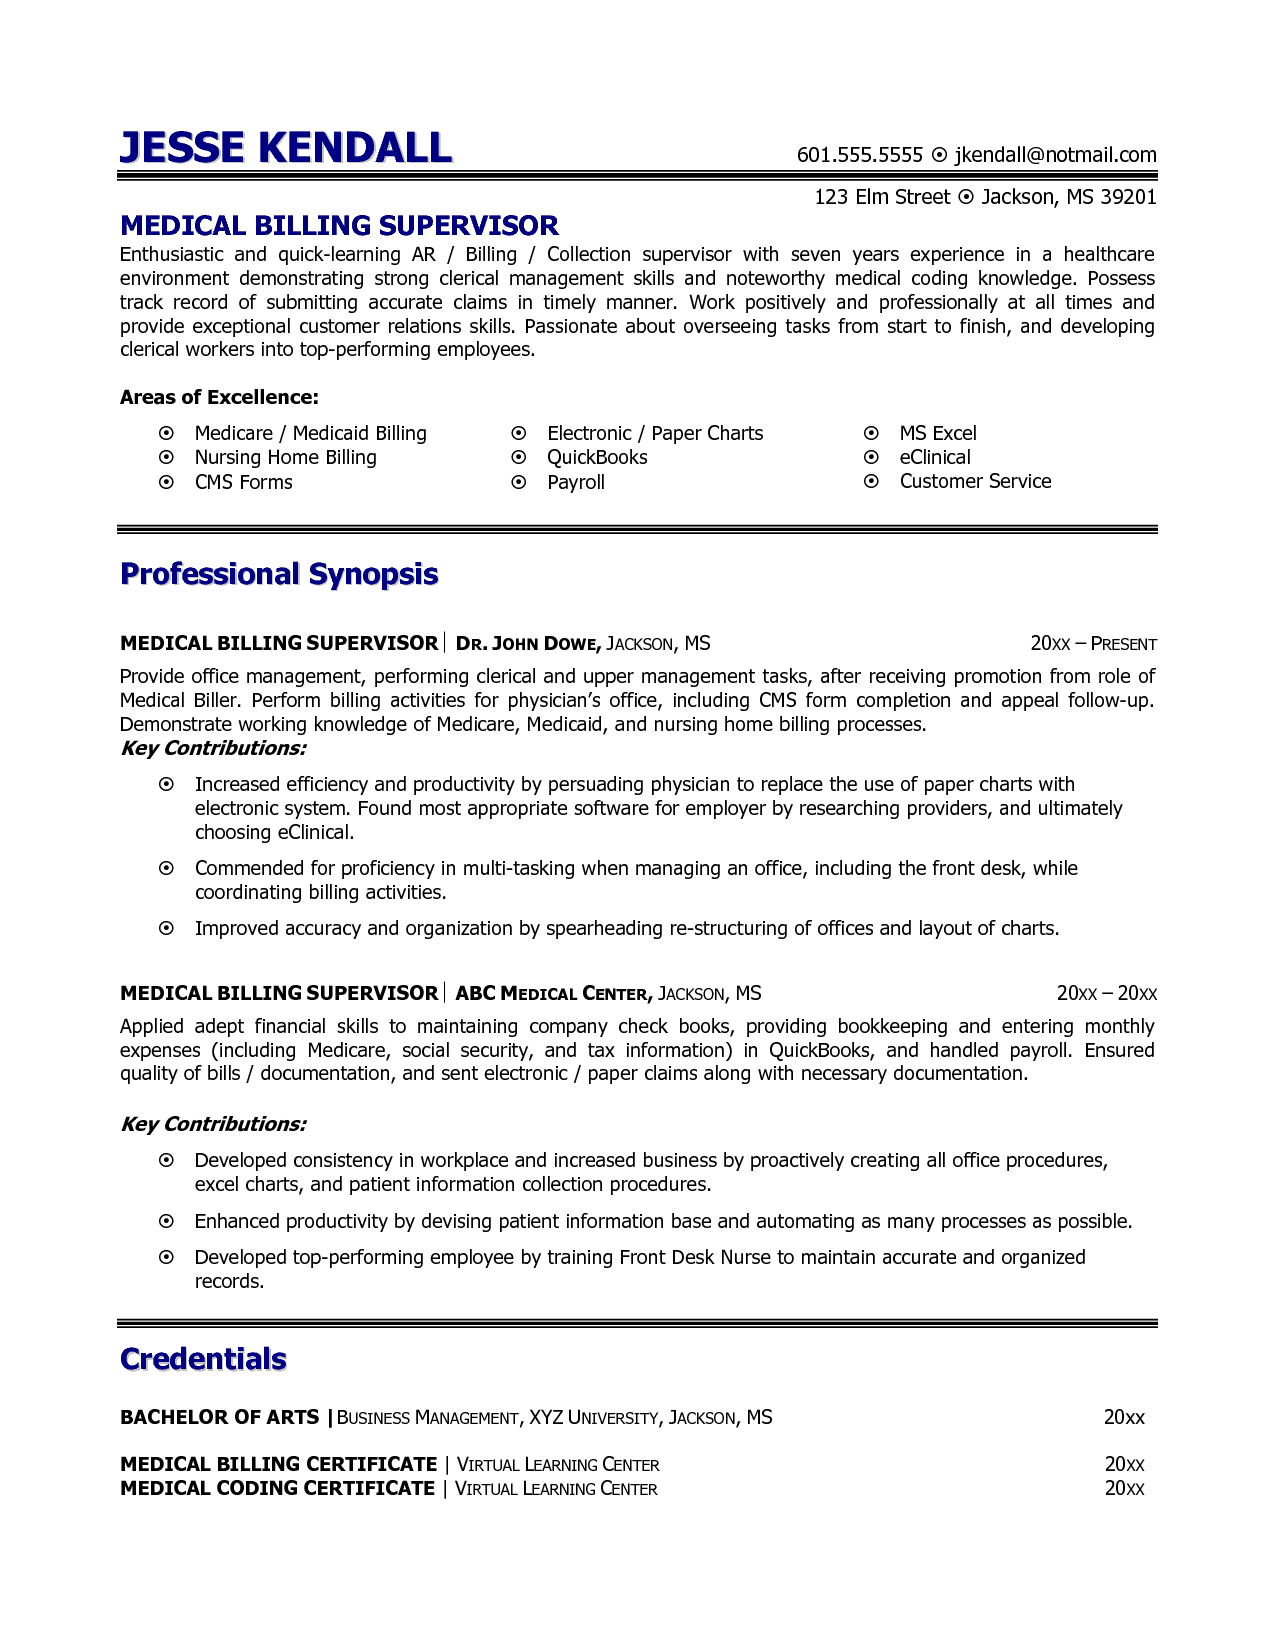 Resume Now Billing Top 8 Billing Coordinator Resume Samples Slideshare  Medical Billing Supervisor Resume Example  Supervisor Resume Samples